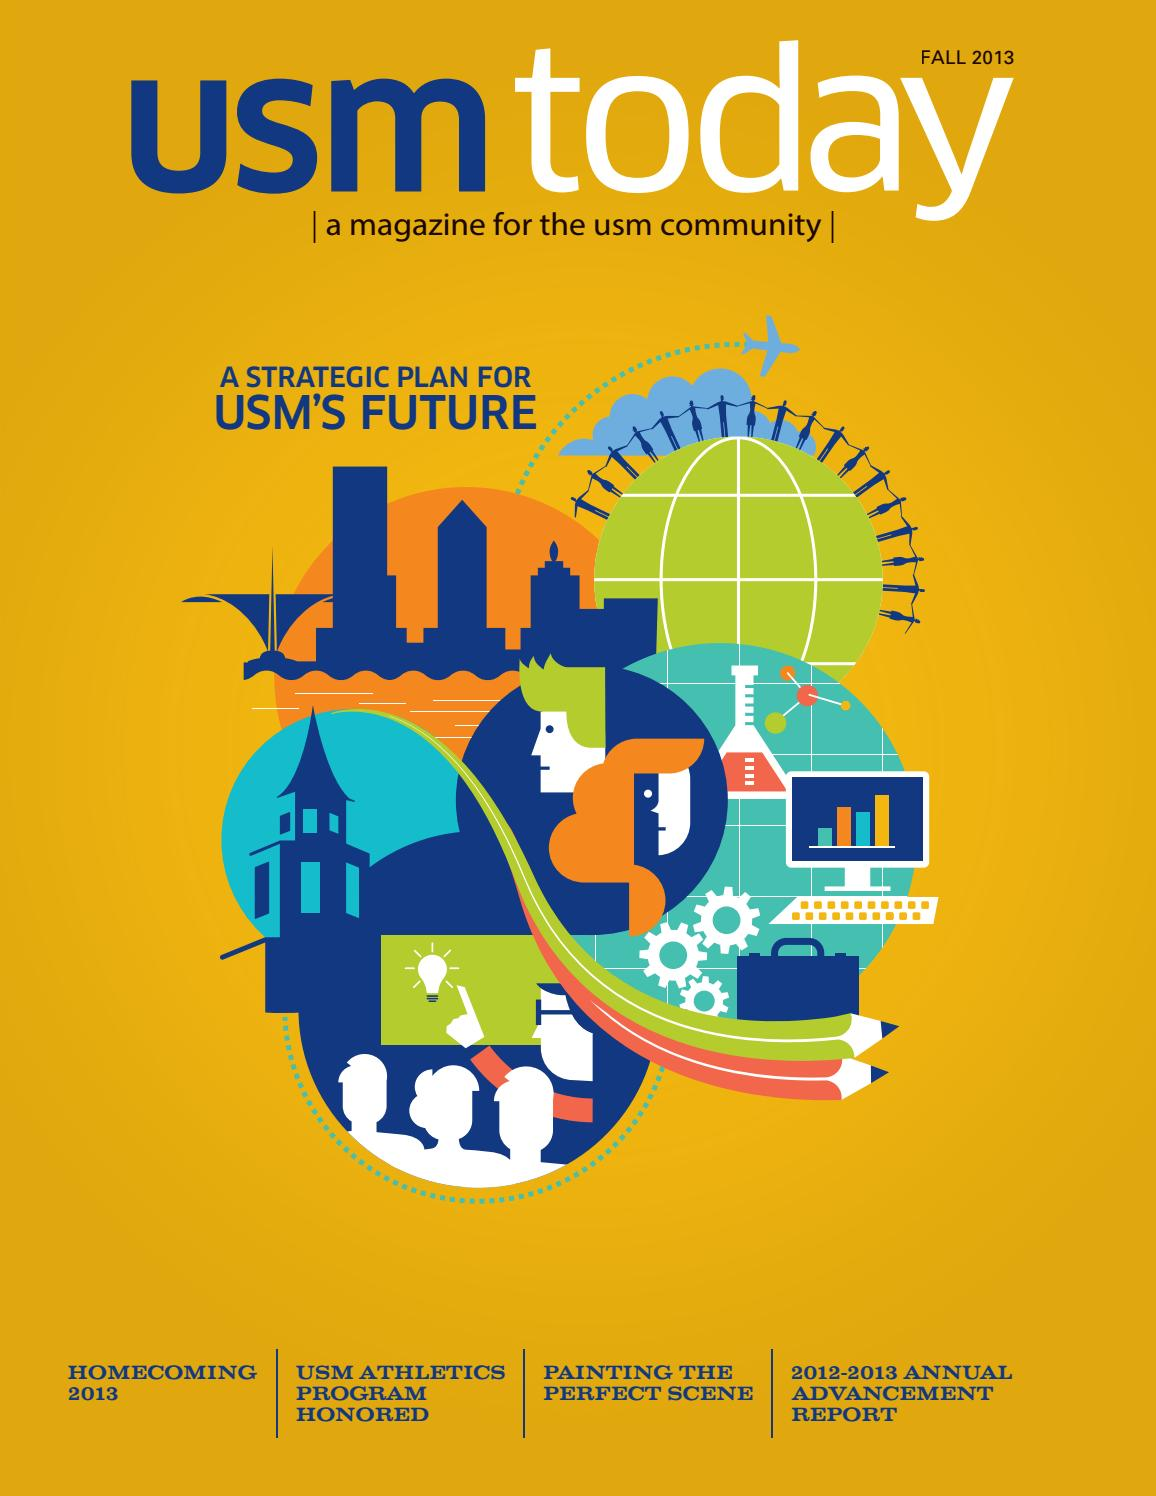 Usm today fall 2013 by university school issuu fandeluxe Choice Image